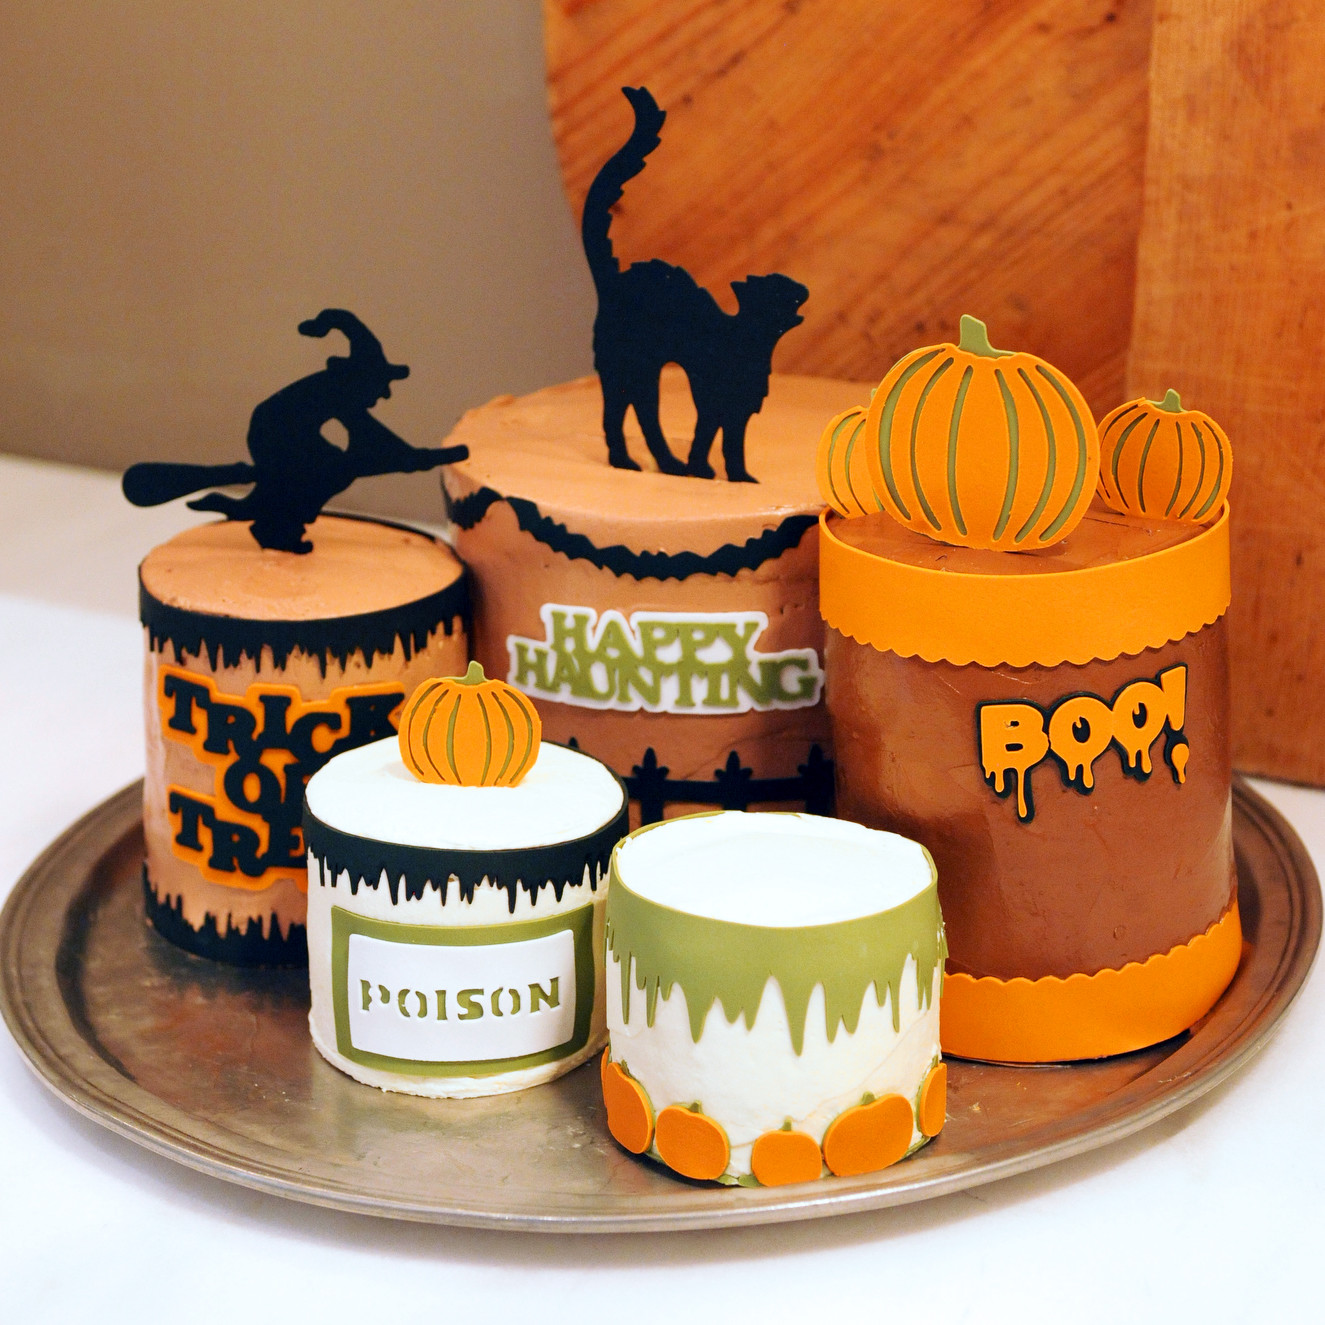 cricut cake decorations martha stewart - Halloween Cakes Decorations